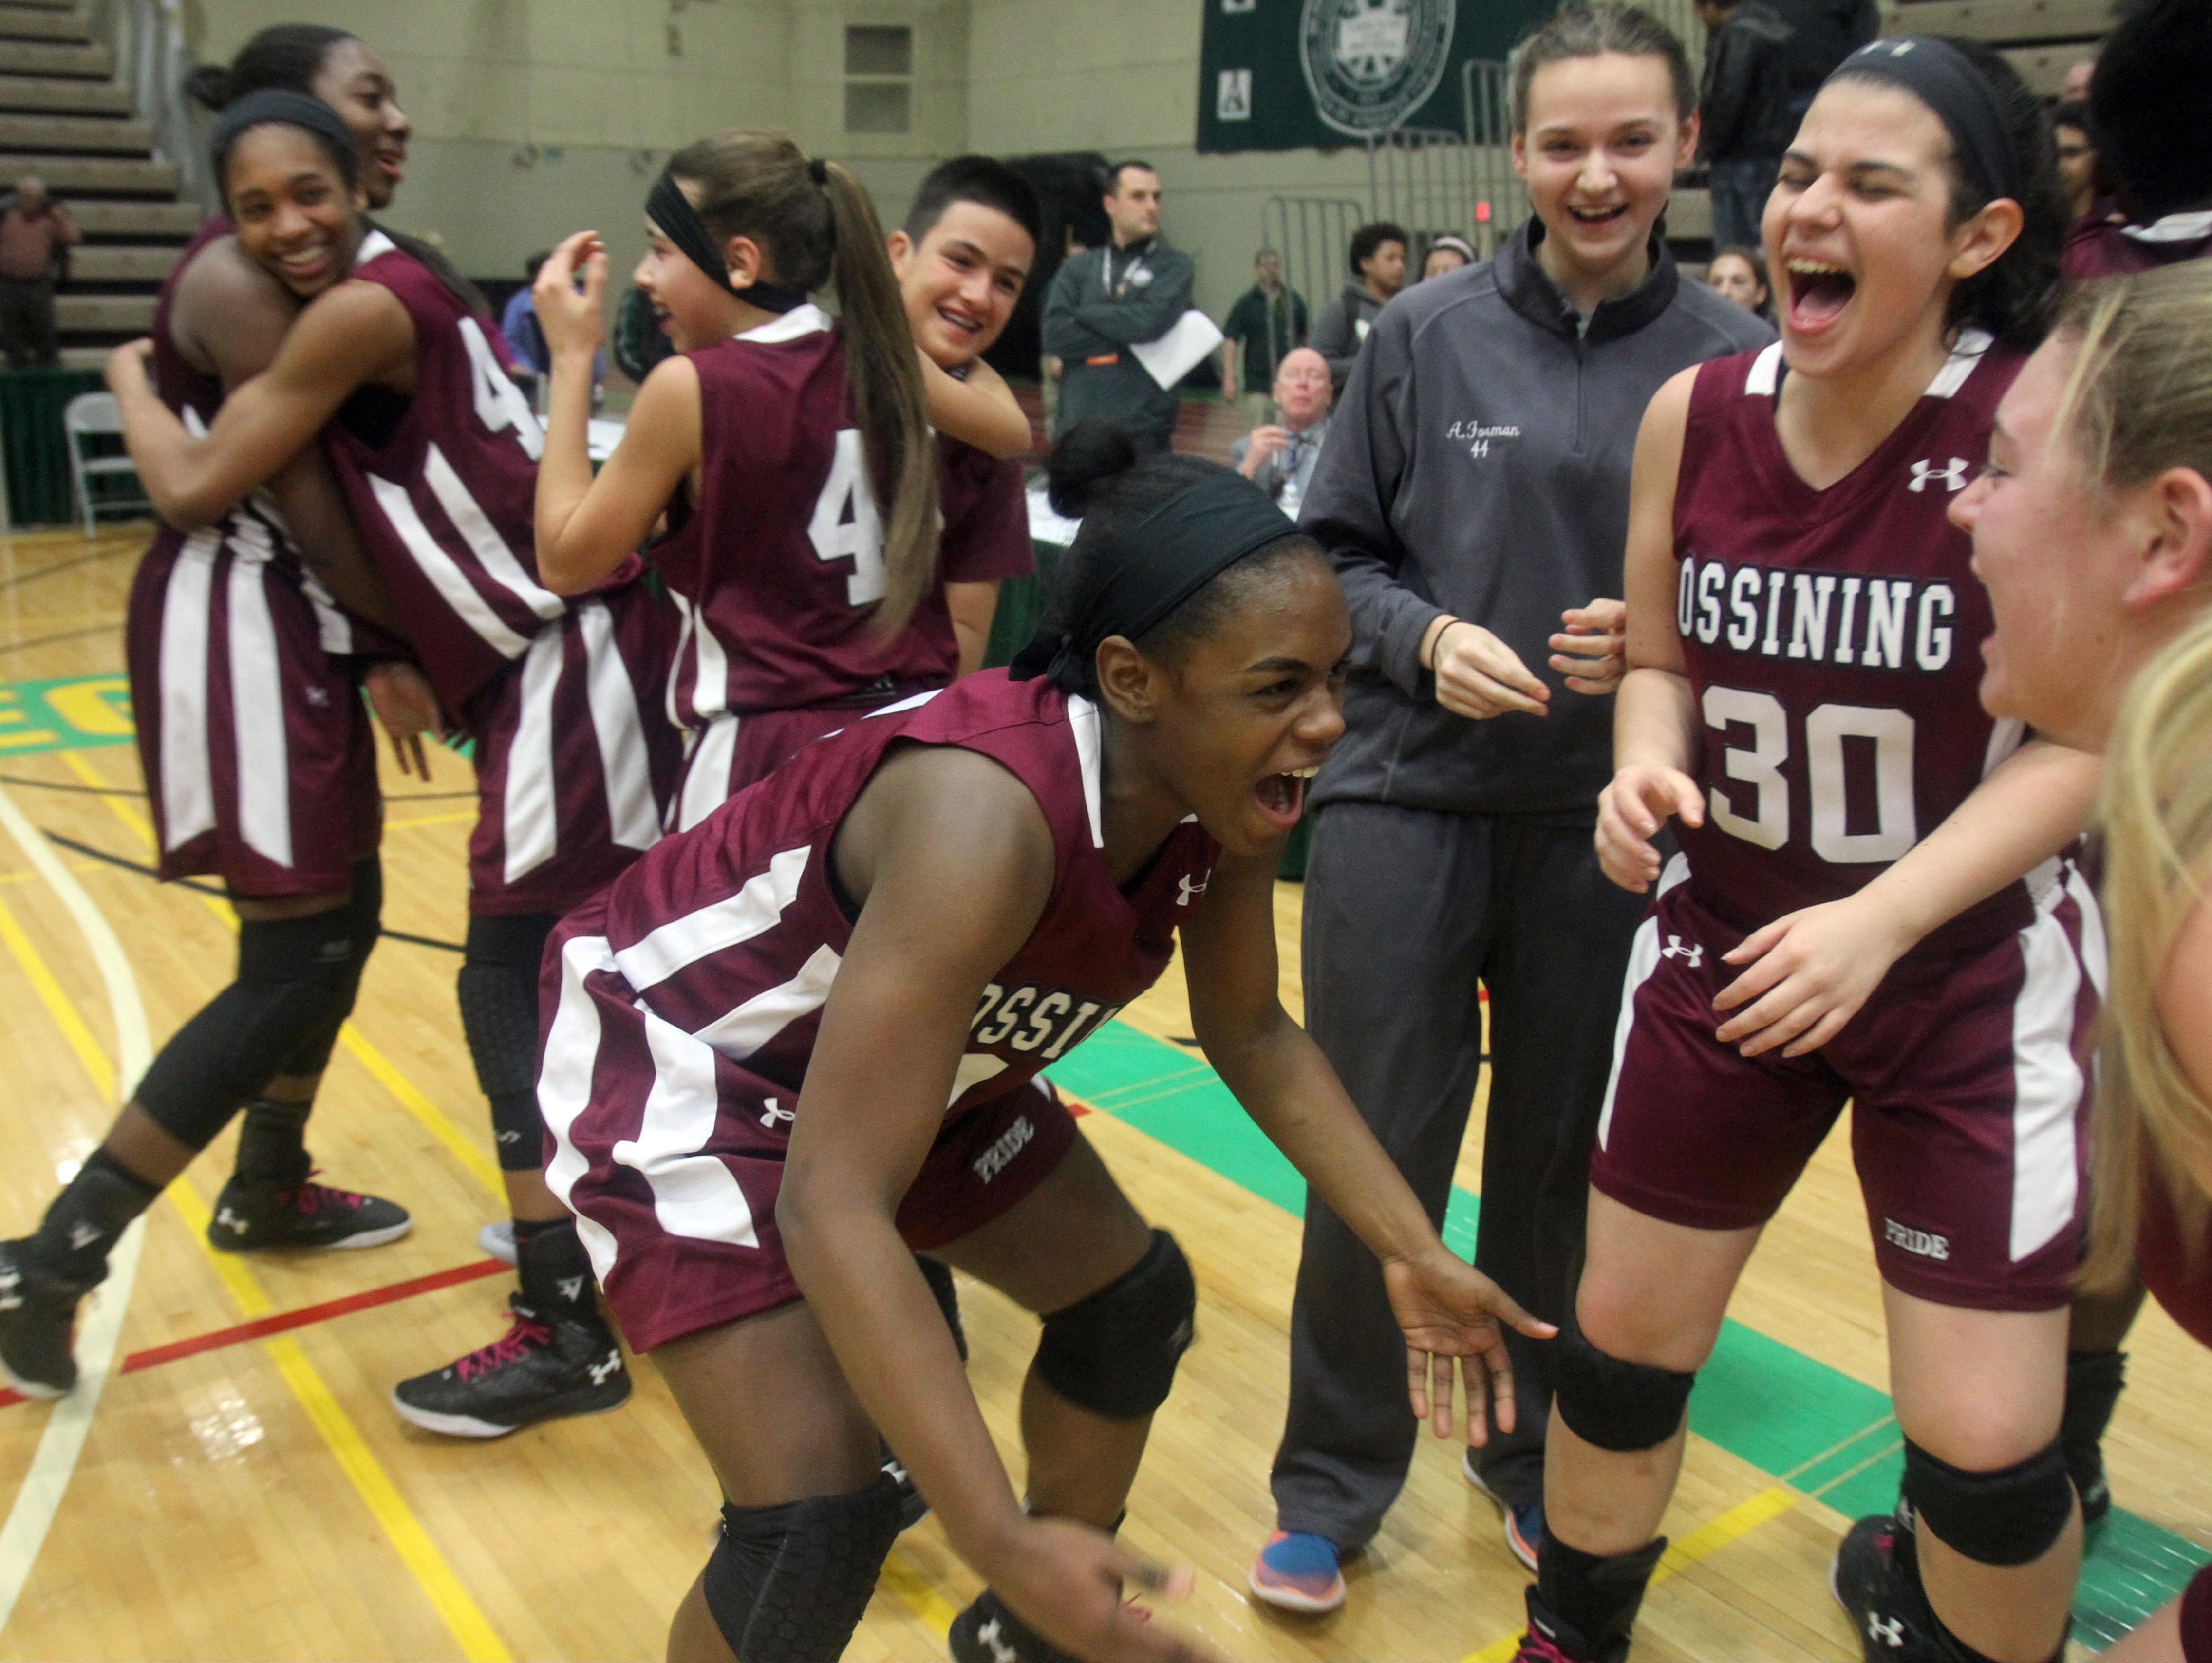 Ossining celebrates after defeating Shenendehowa 69-66 to win the the New York State Class AA championship at Hudson Valley Community College in Troy March 12, 2016.